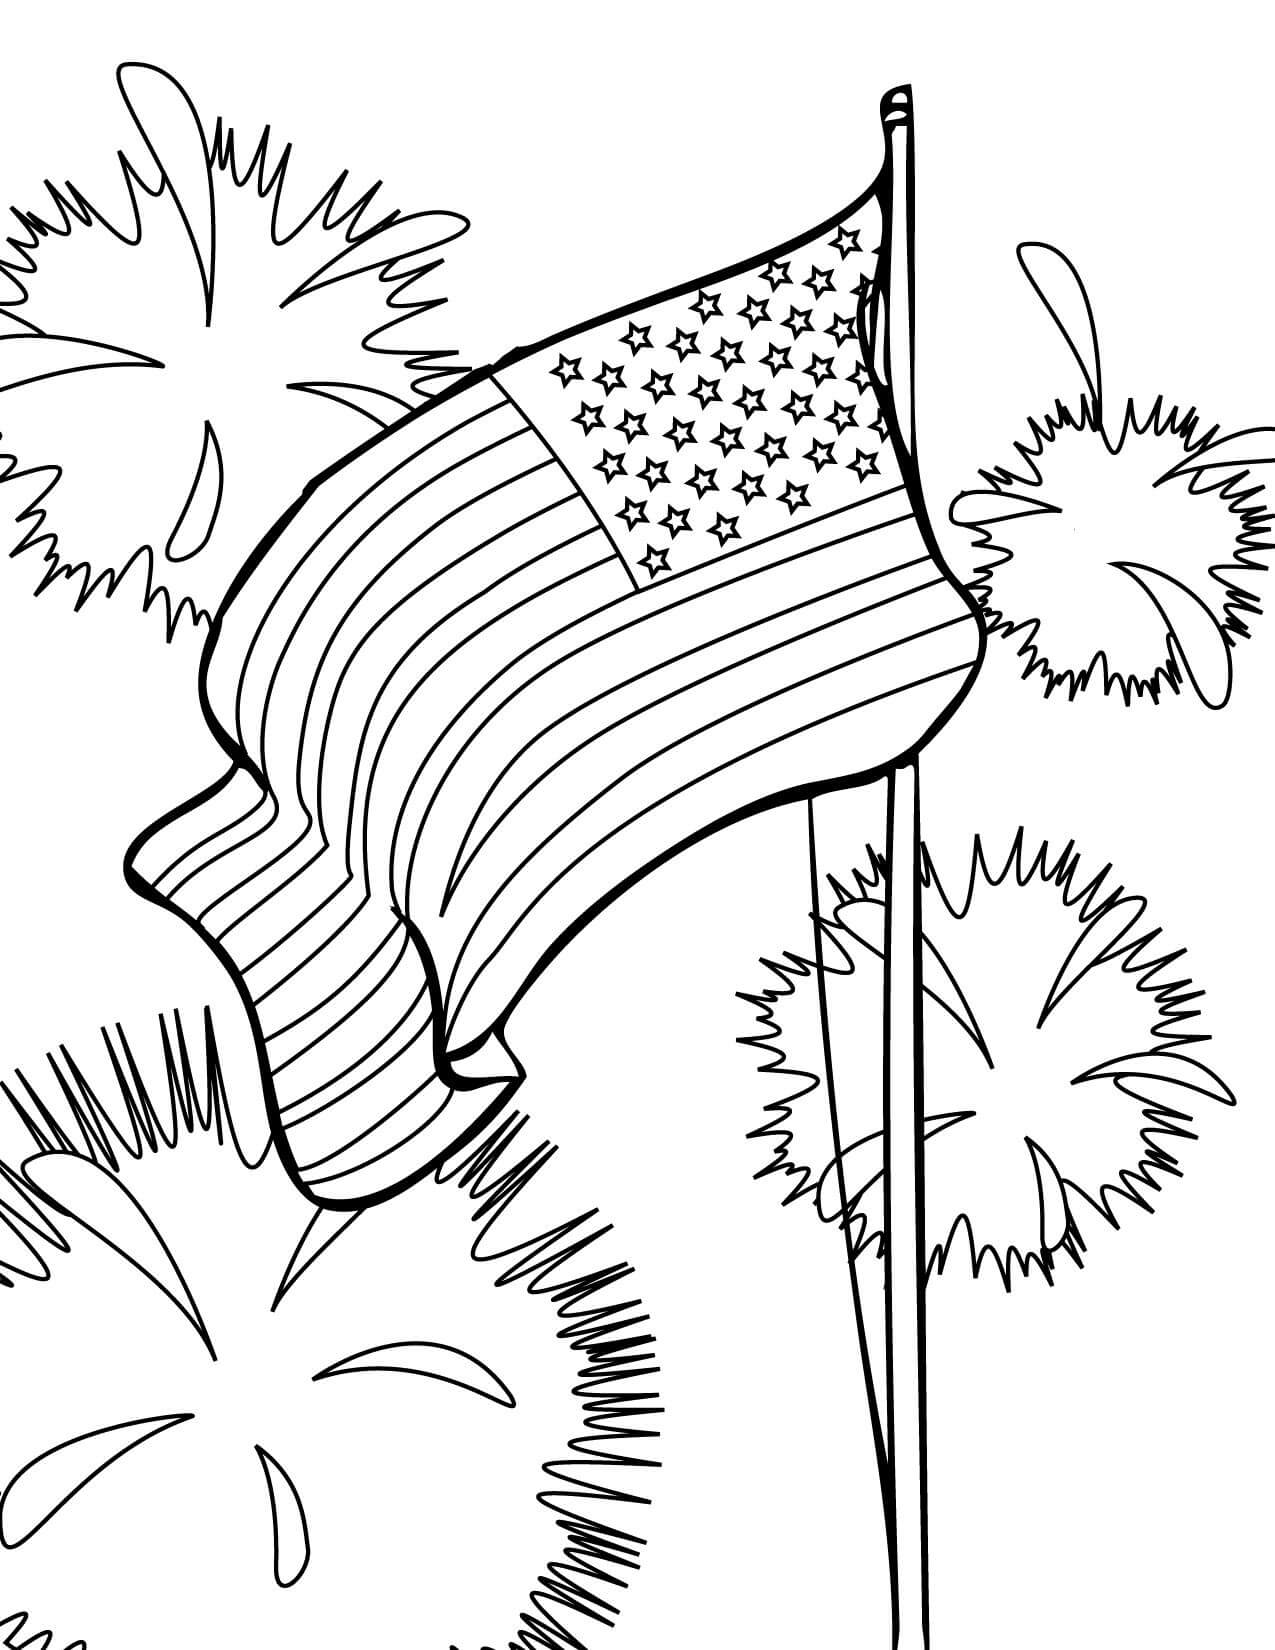 memorial day coloring pages printable - photo#18